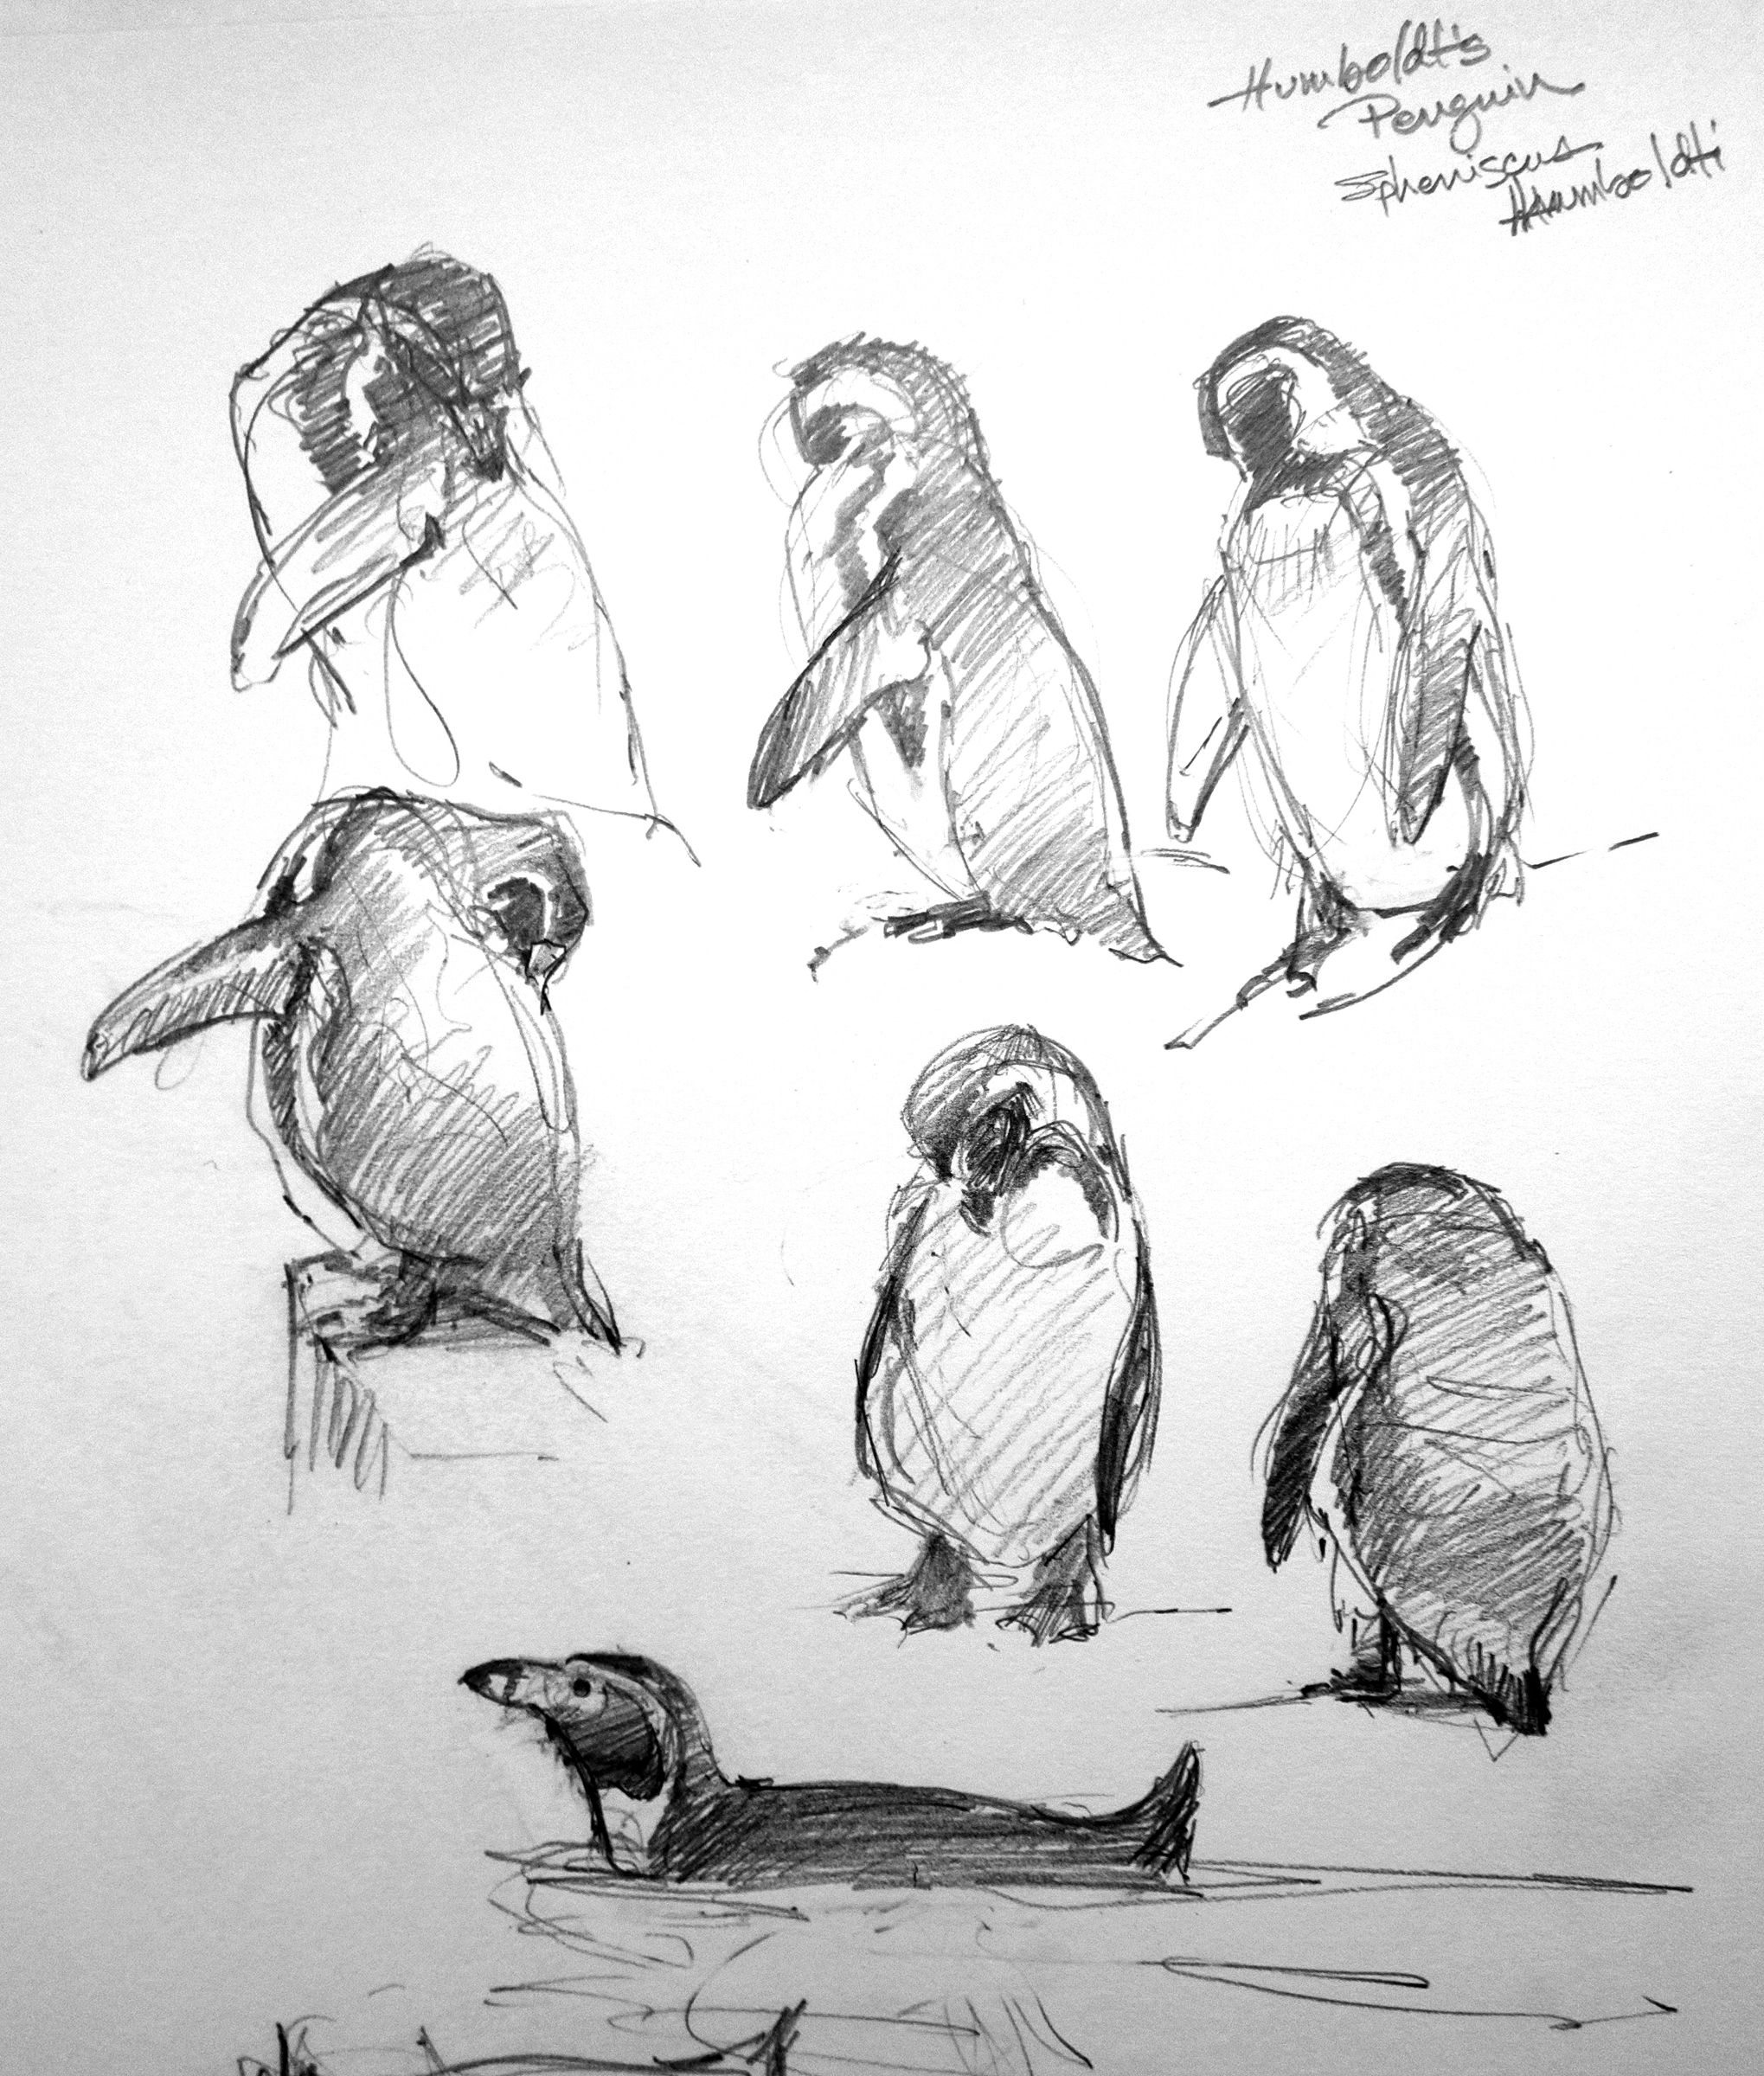 Humboldts penguins copenhagen zoo pencil on robert bateman 8 1 2 x